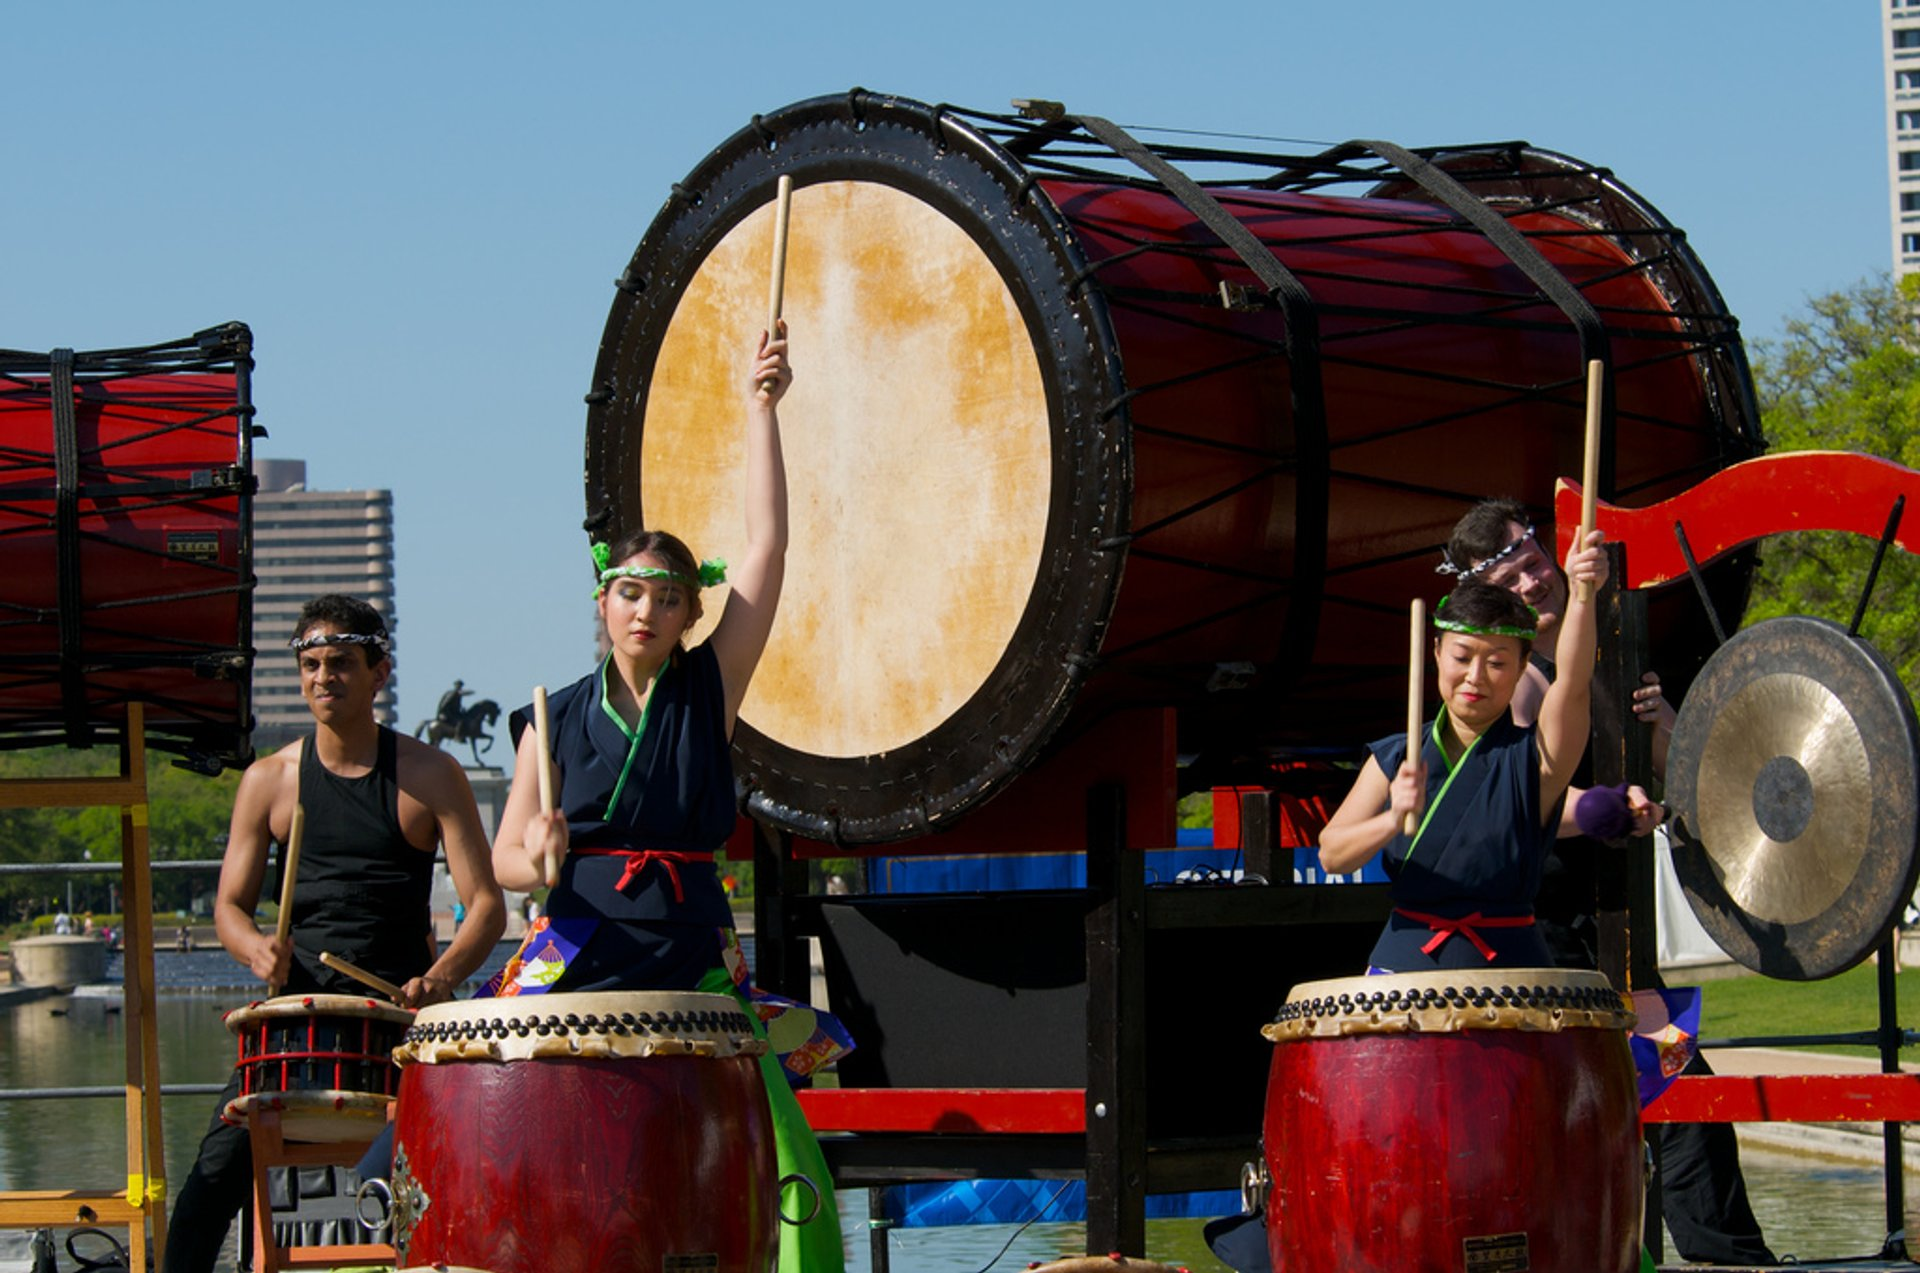 Japan Festival Houston in Texas - Best Season 2020